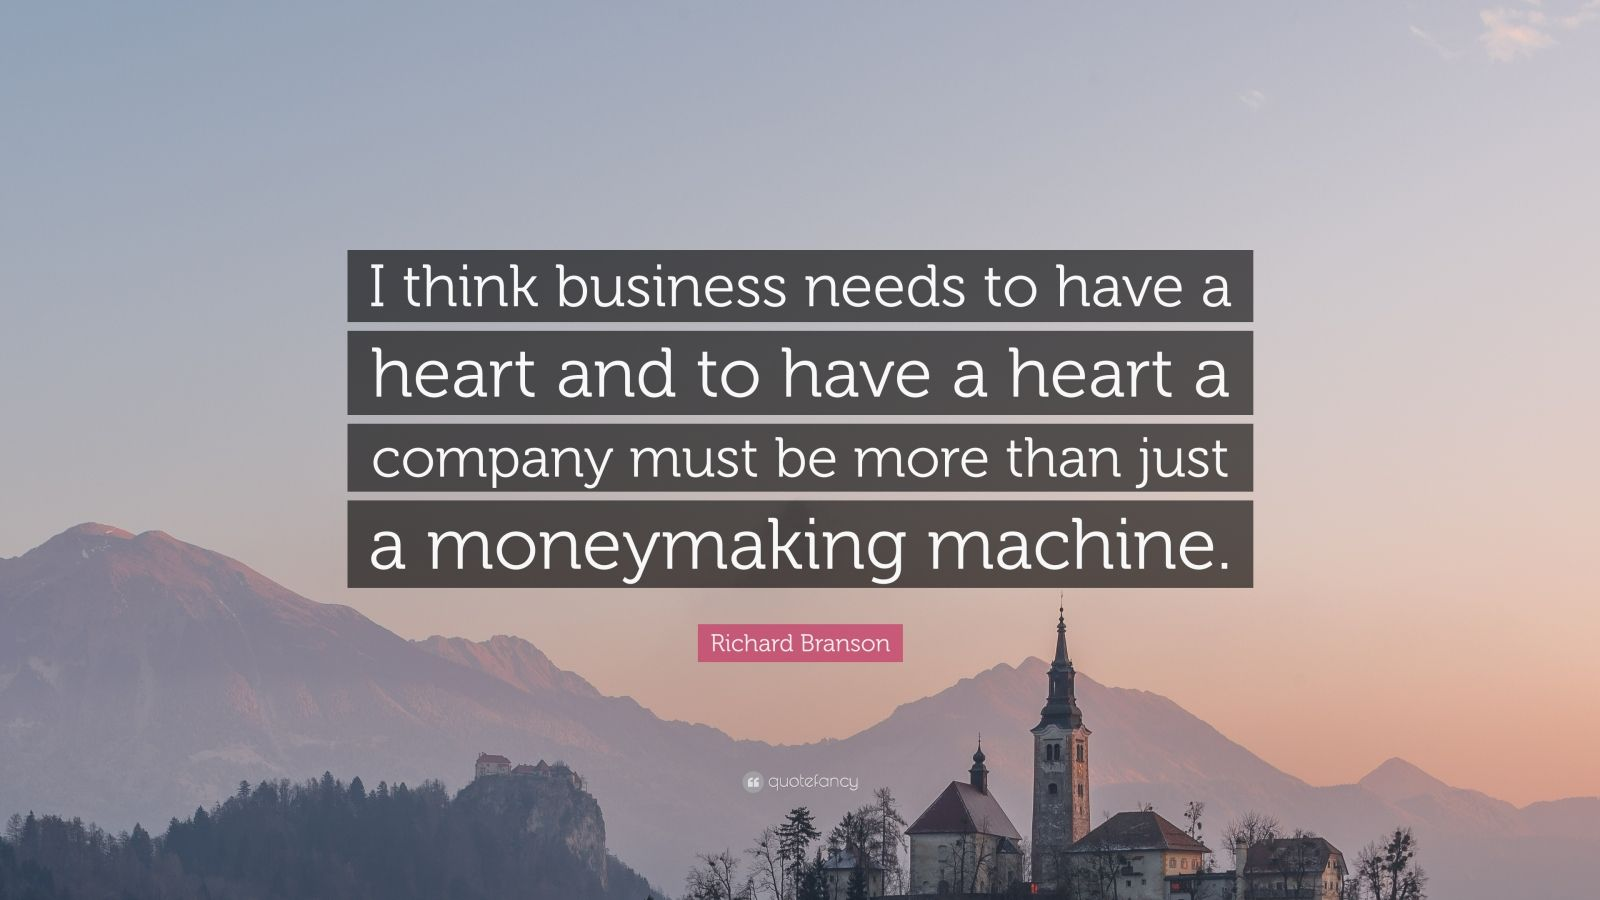 """Richard Branson Quote: """"I think business needs to have a heart and to have a heart a company must be more than just a moneymaking machine."""""""